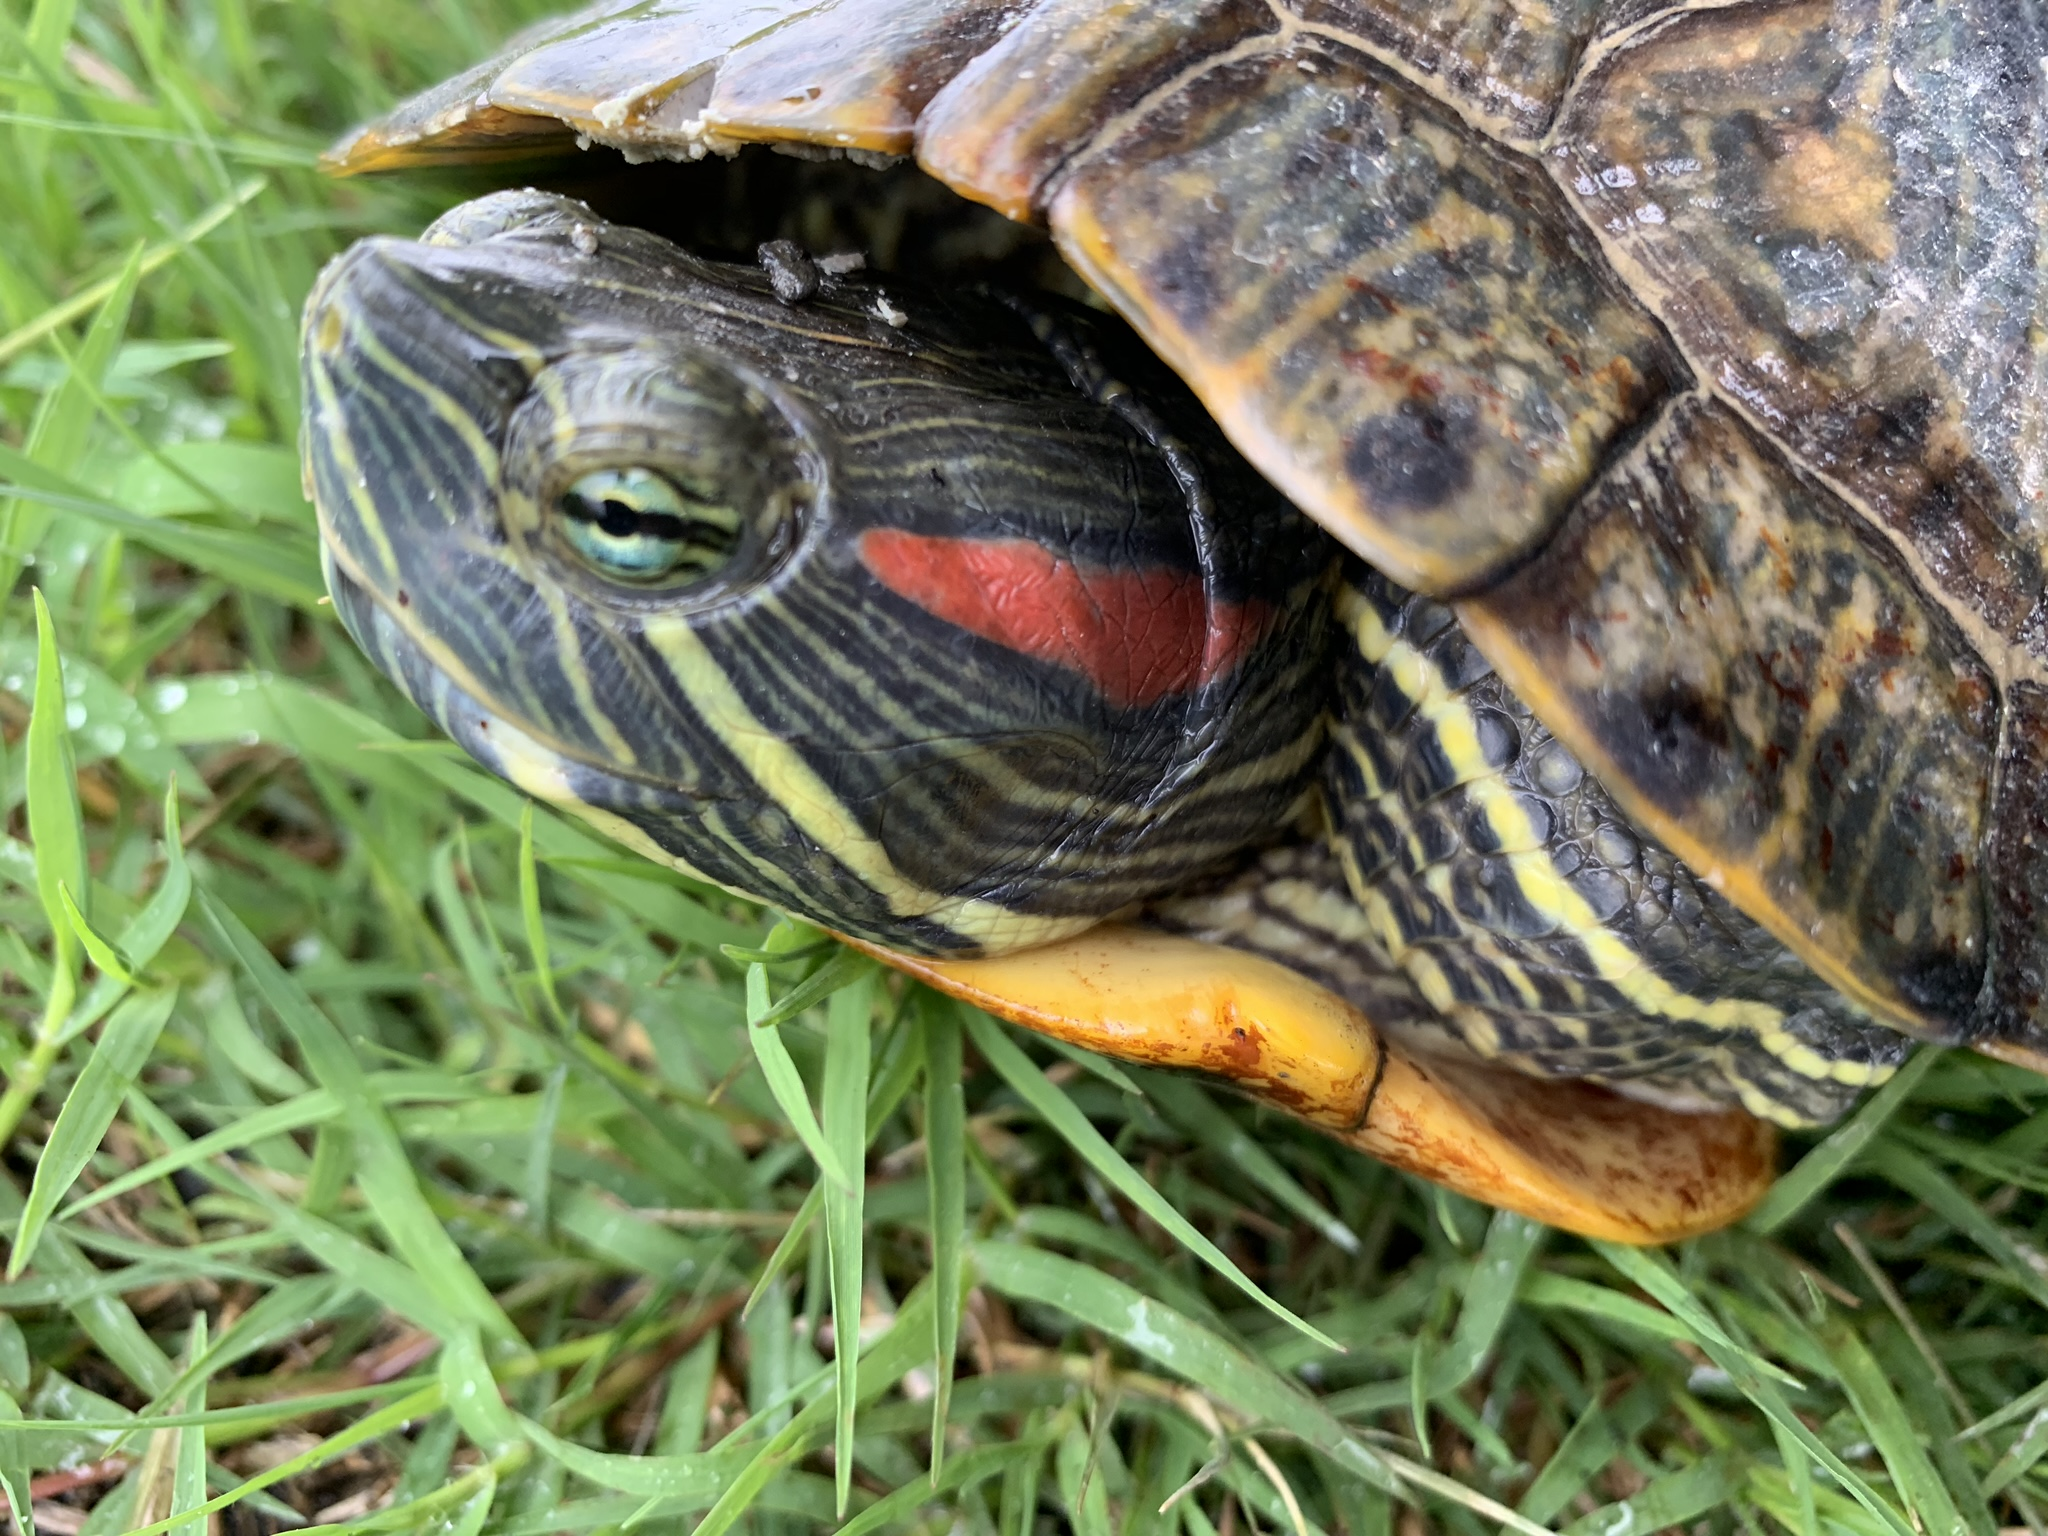 The red-eared slider is the most commonly harvested freshwater turtle in Arkansas. Data are needed to understand the effects of commercial harvest on turtle populations.